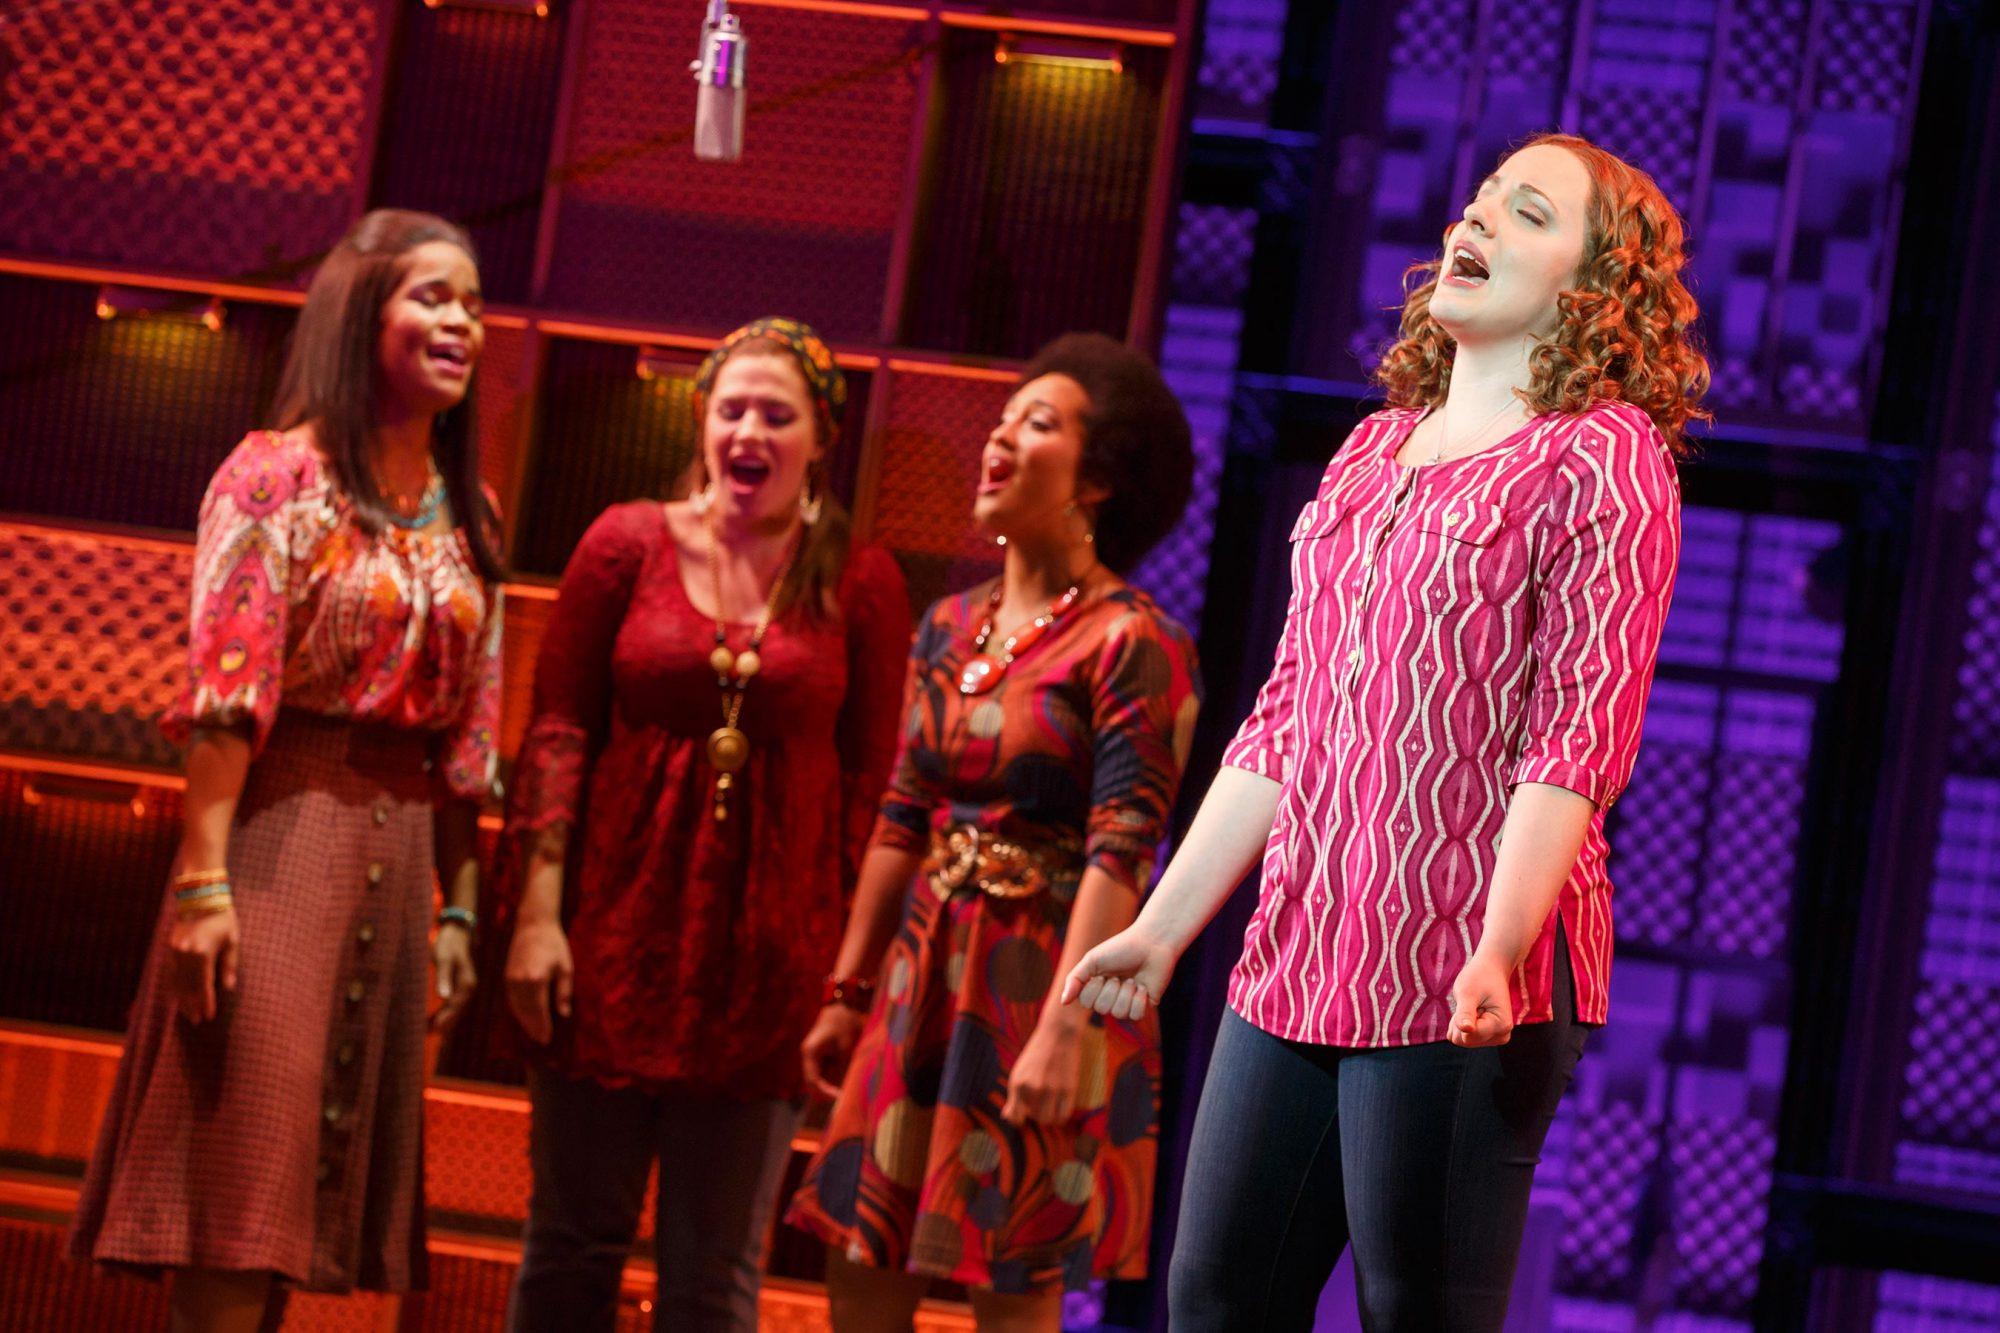 Beautiful: The Carole King Musical - Photo by Joan Marcus